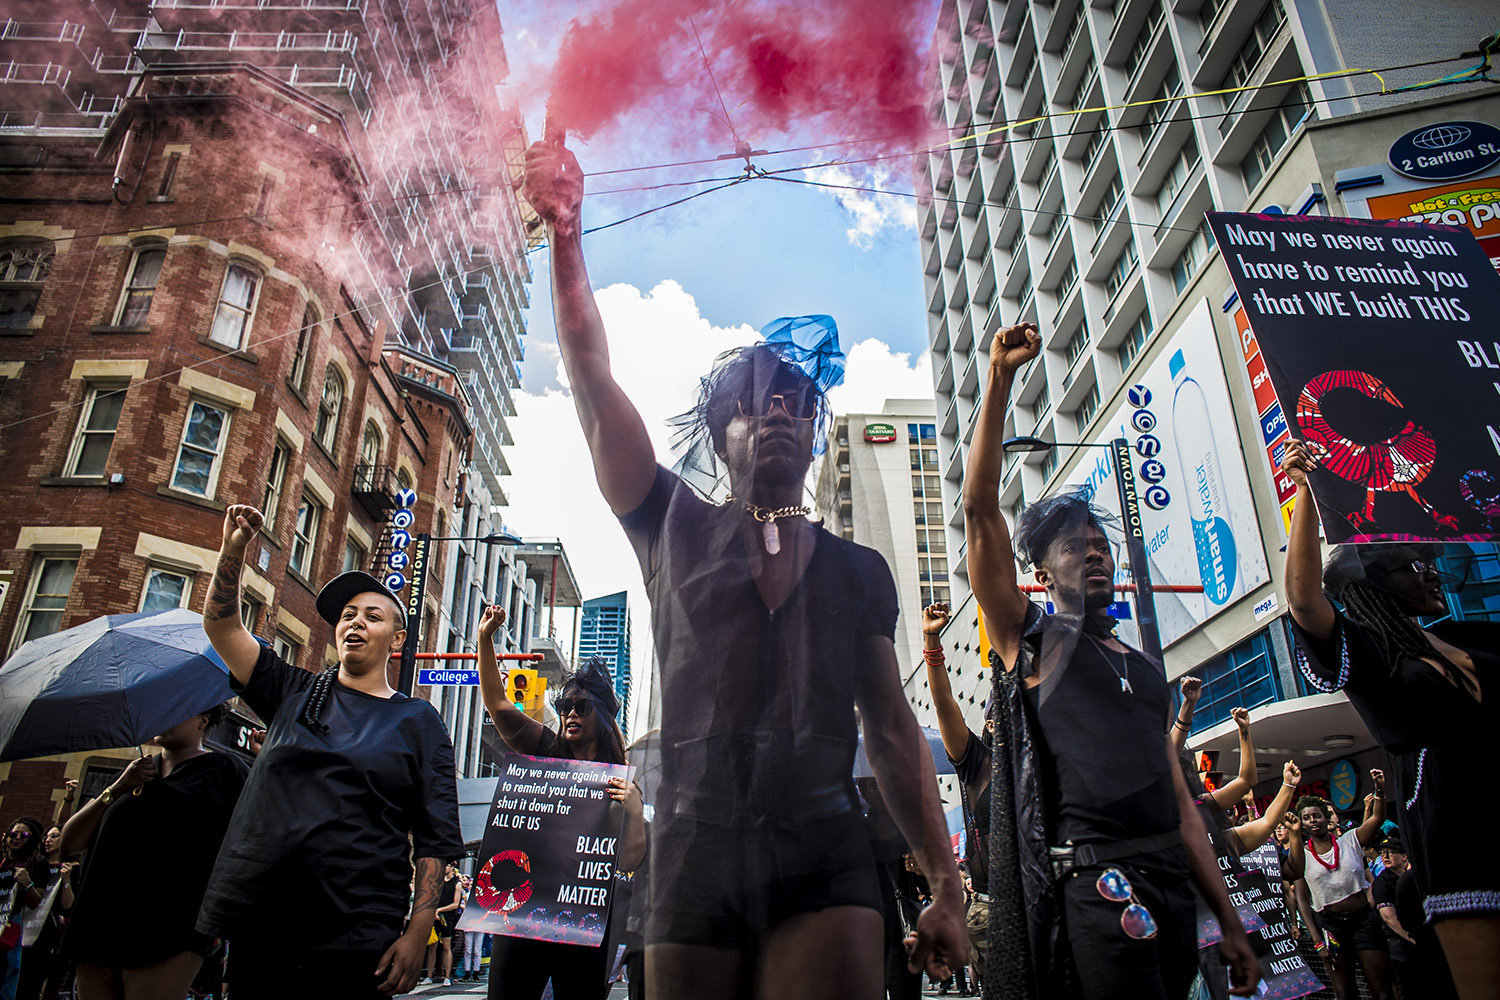 Members of Black Lives Matter movement march during Pride Parade, Toronto, Sunday, June 25, 2017.